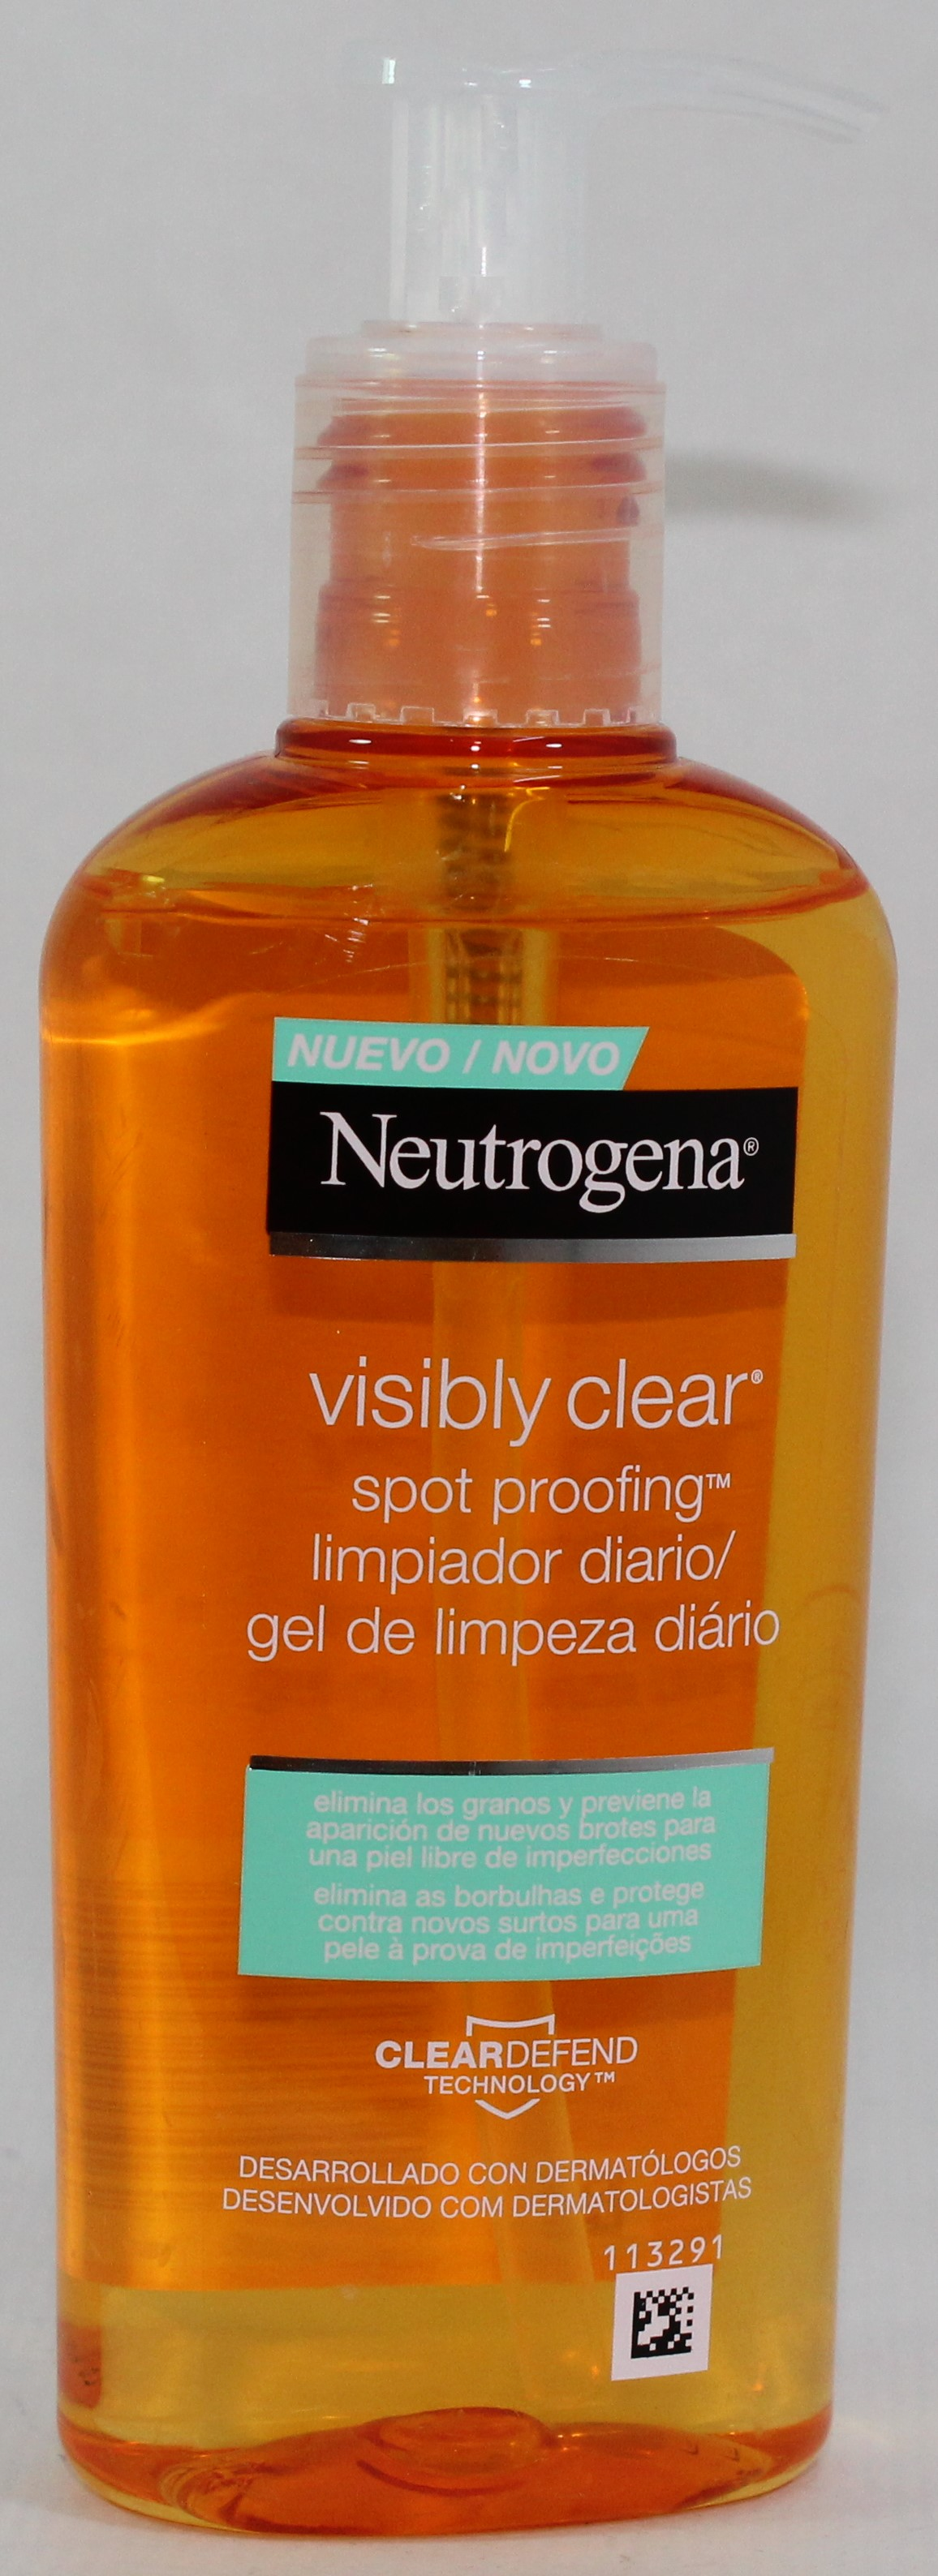 NEUTROGENA VISIBLY CLEAR LIMPIADOR DIARIO 200 ML